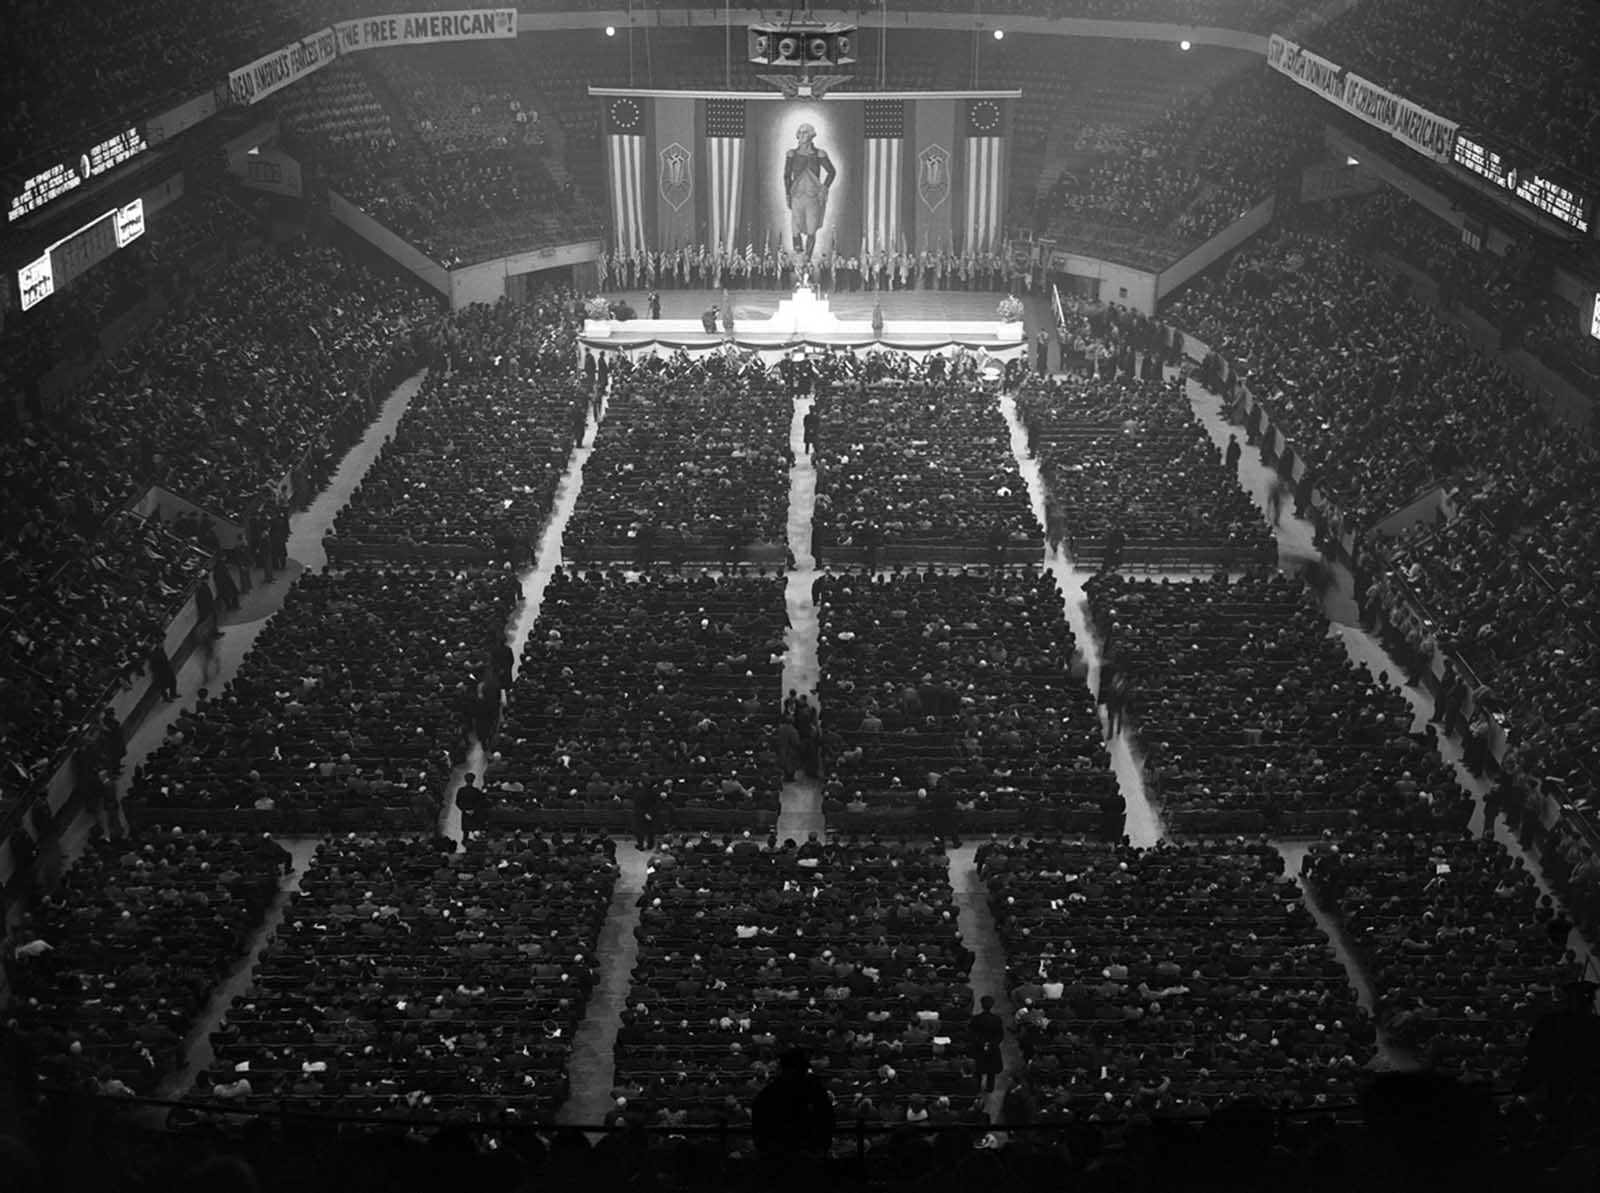 A crowd of approximately 20,000 attends a German American Bund Rally at New York's Madison Square Garden on February 20, 1939. At center is a large portrait of George Washington, claimed as an icon by the Bund, who called him